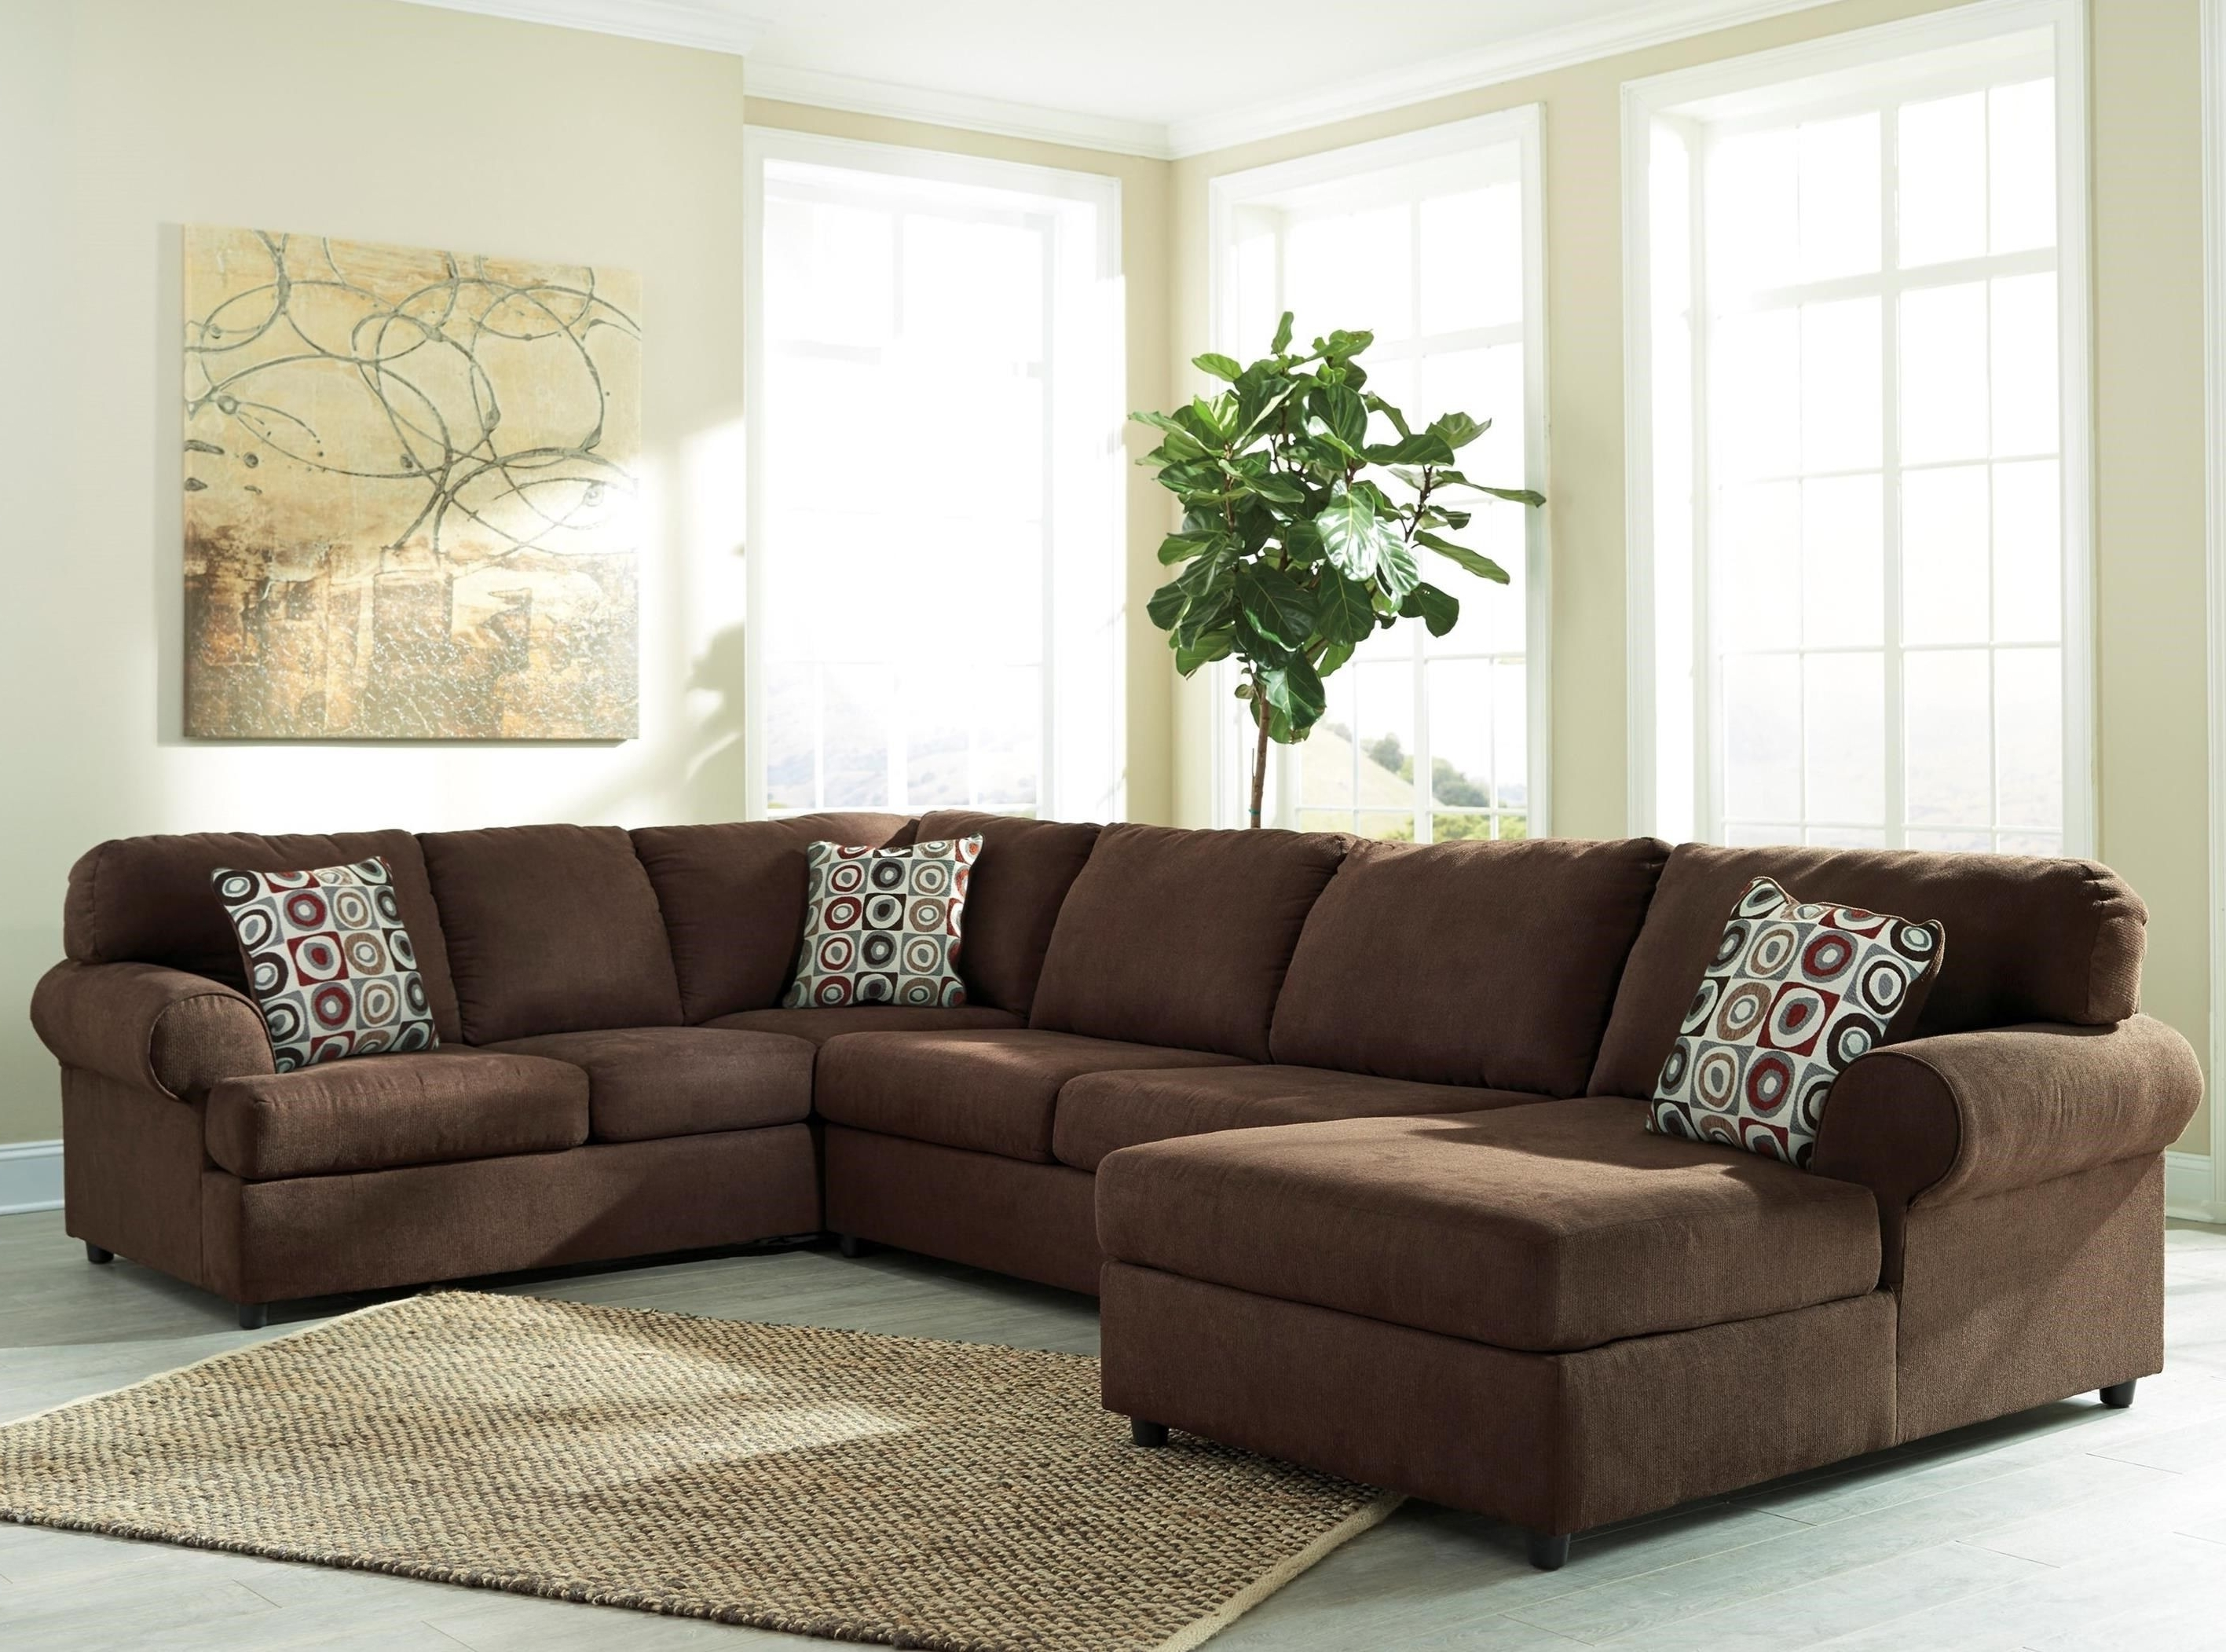 Royal Furniture Sectional Sofas Inside Most Current Jayceon 3 Piece Sectional With Left Chaisesignature Design (View 11 of 20)